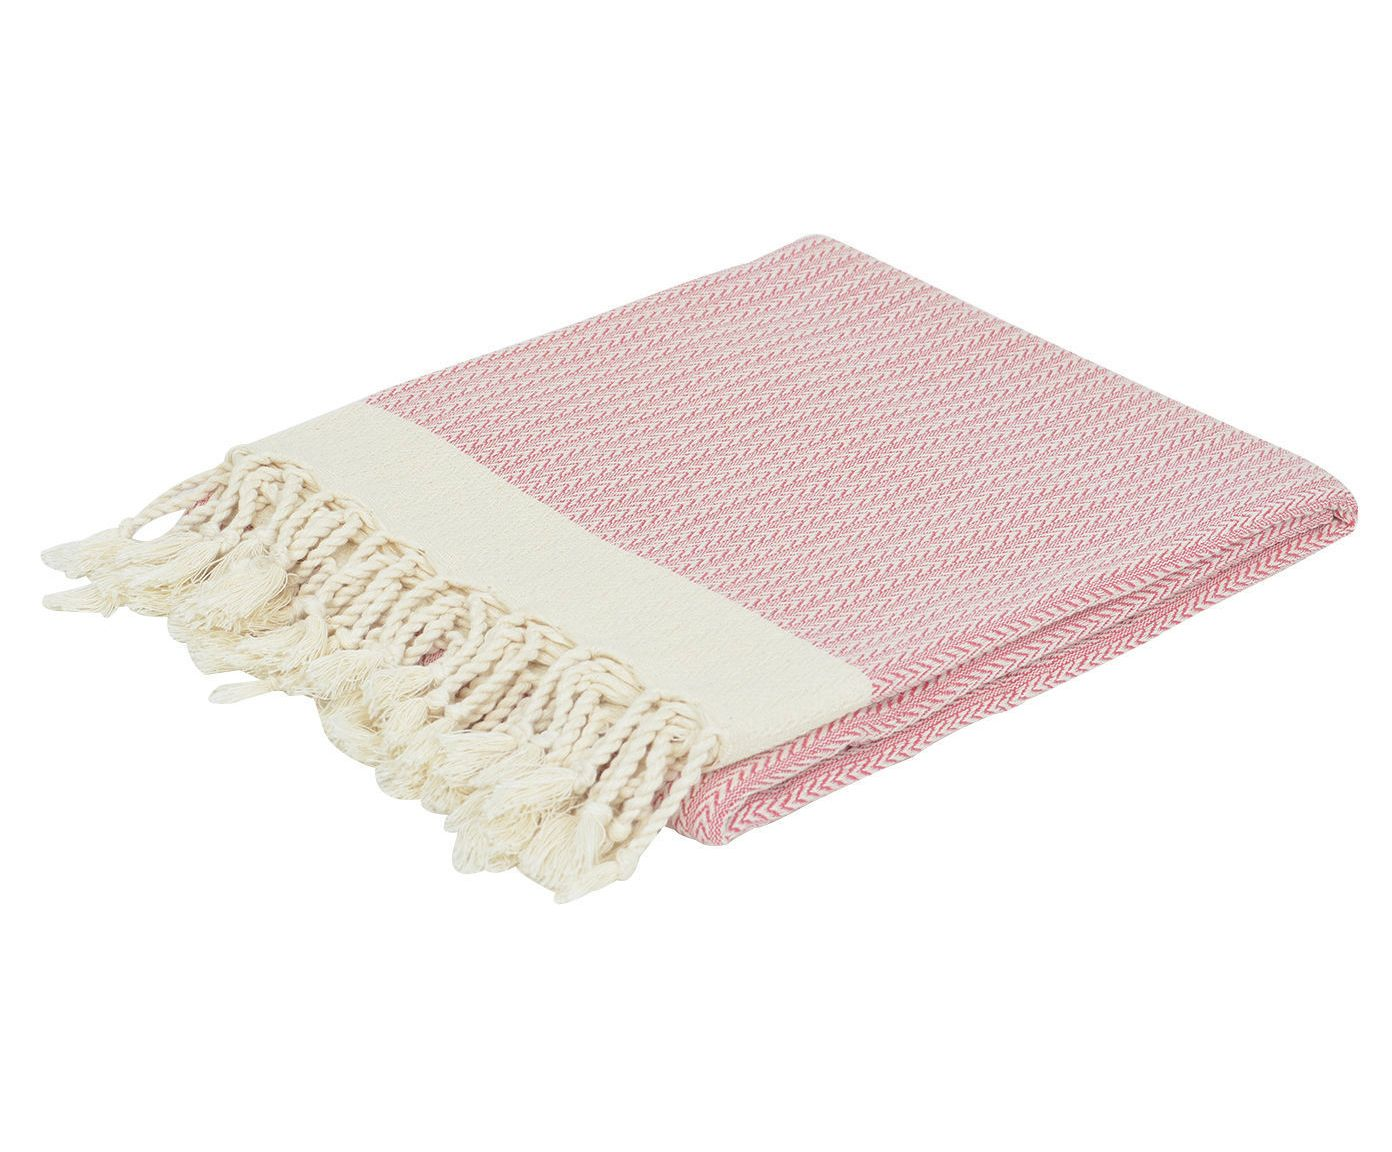 Fouta Mahdia Coral - 111x176cm   Westwing.com.br